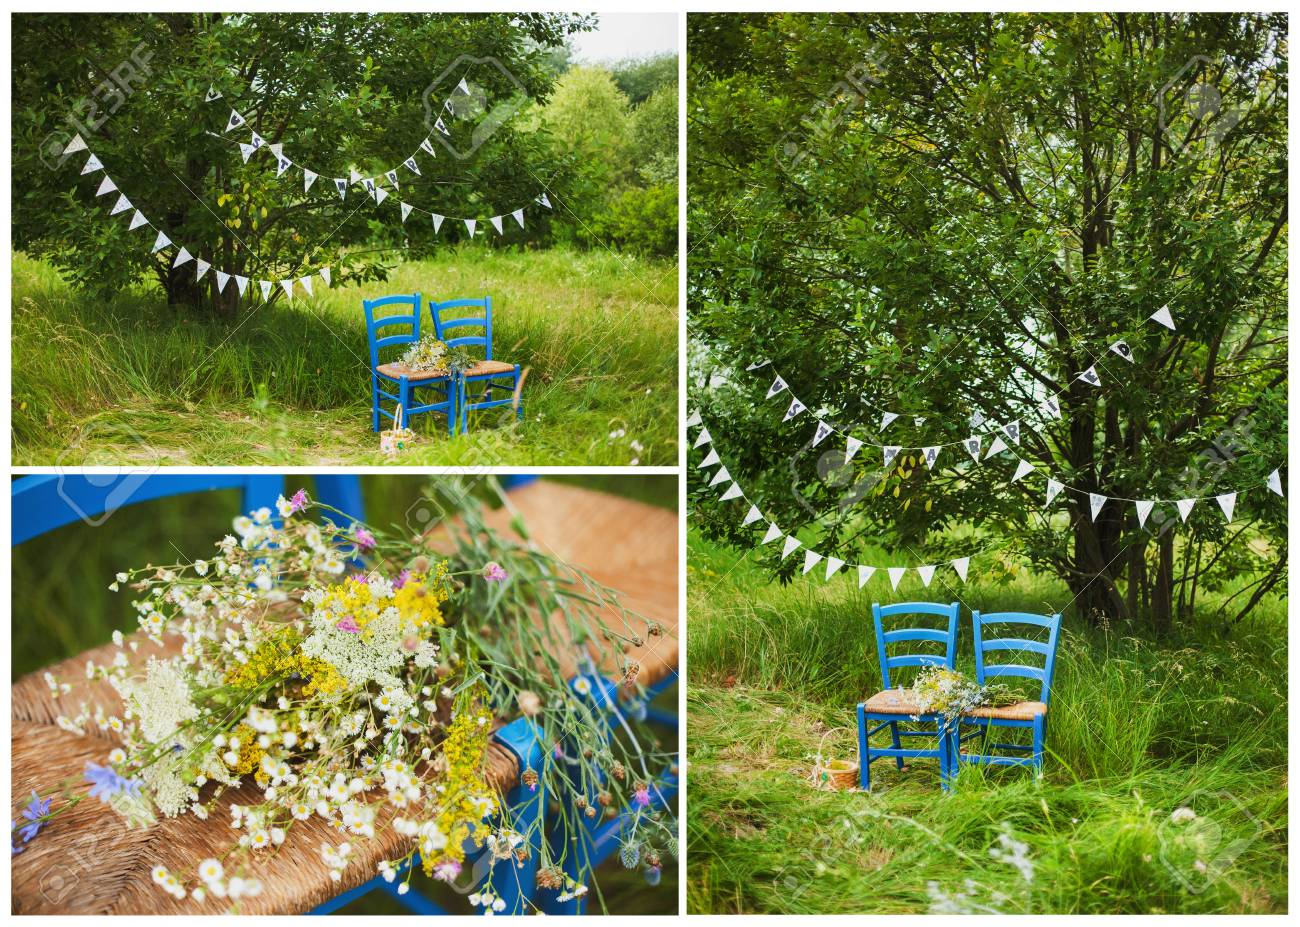 Decor Photobooth Collage Of Three Photos Of Wedding Decor For Photobooth 2 Blue